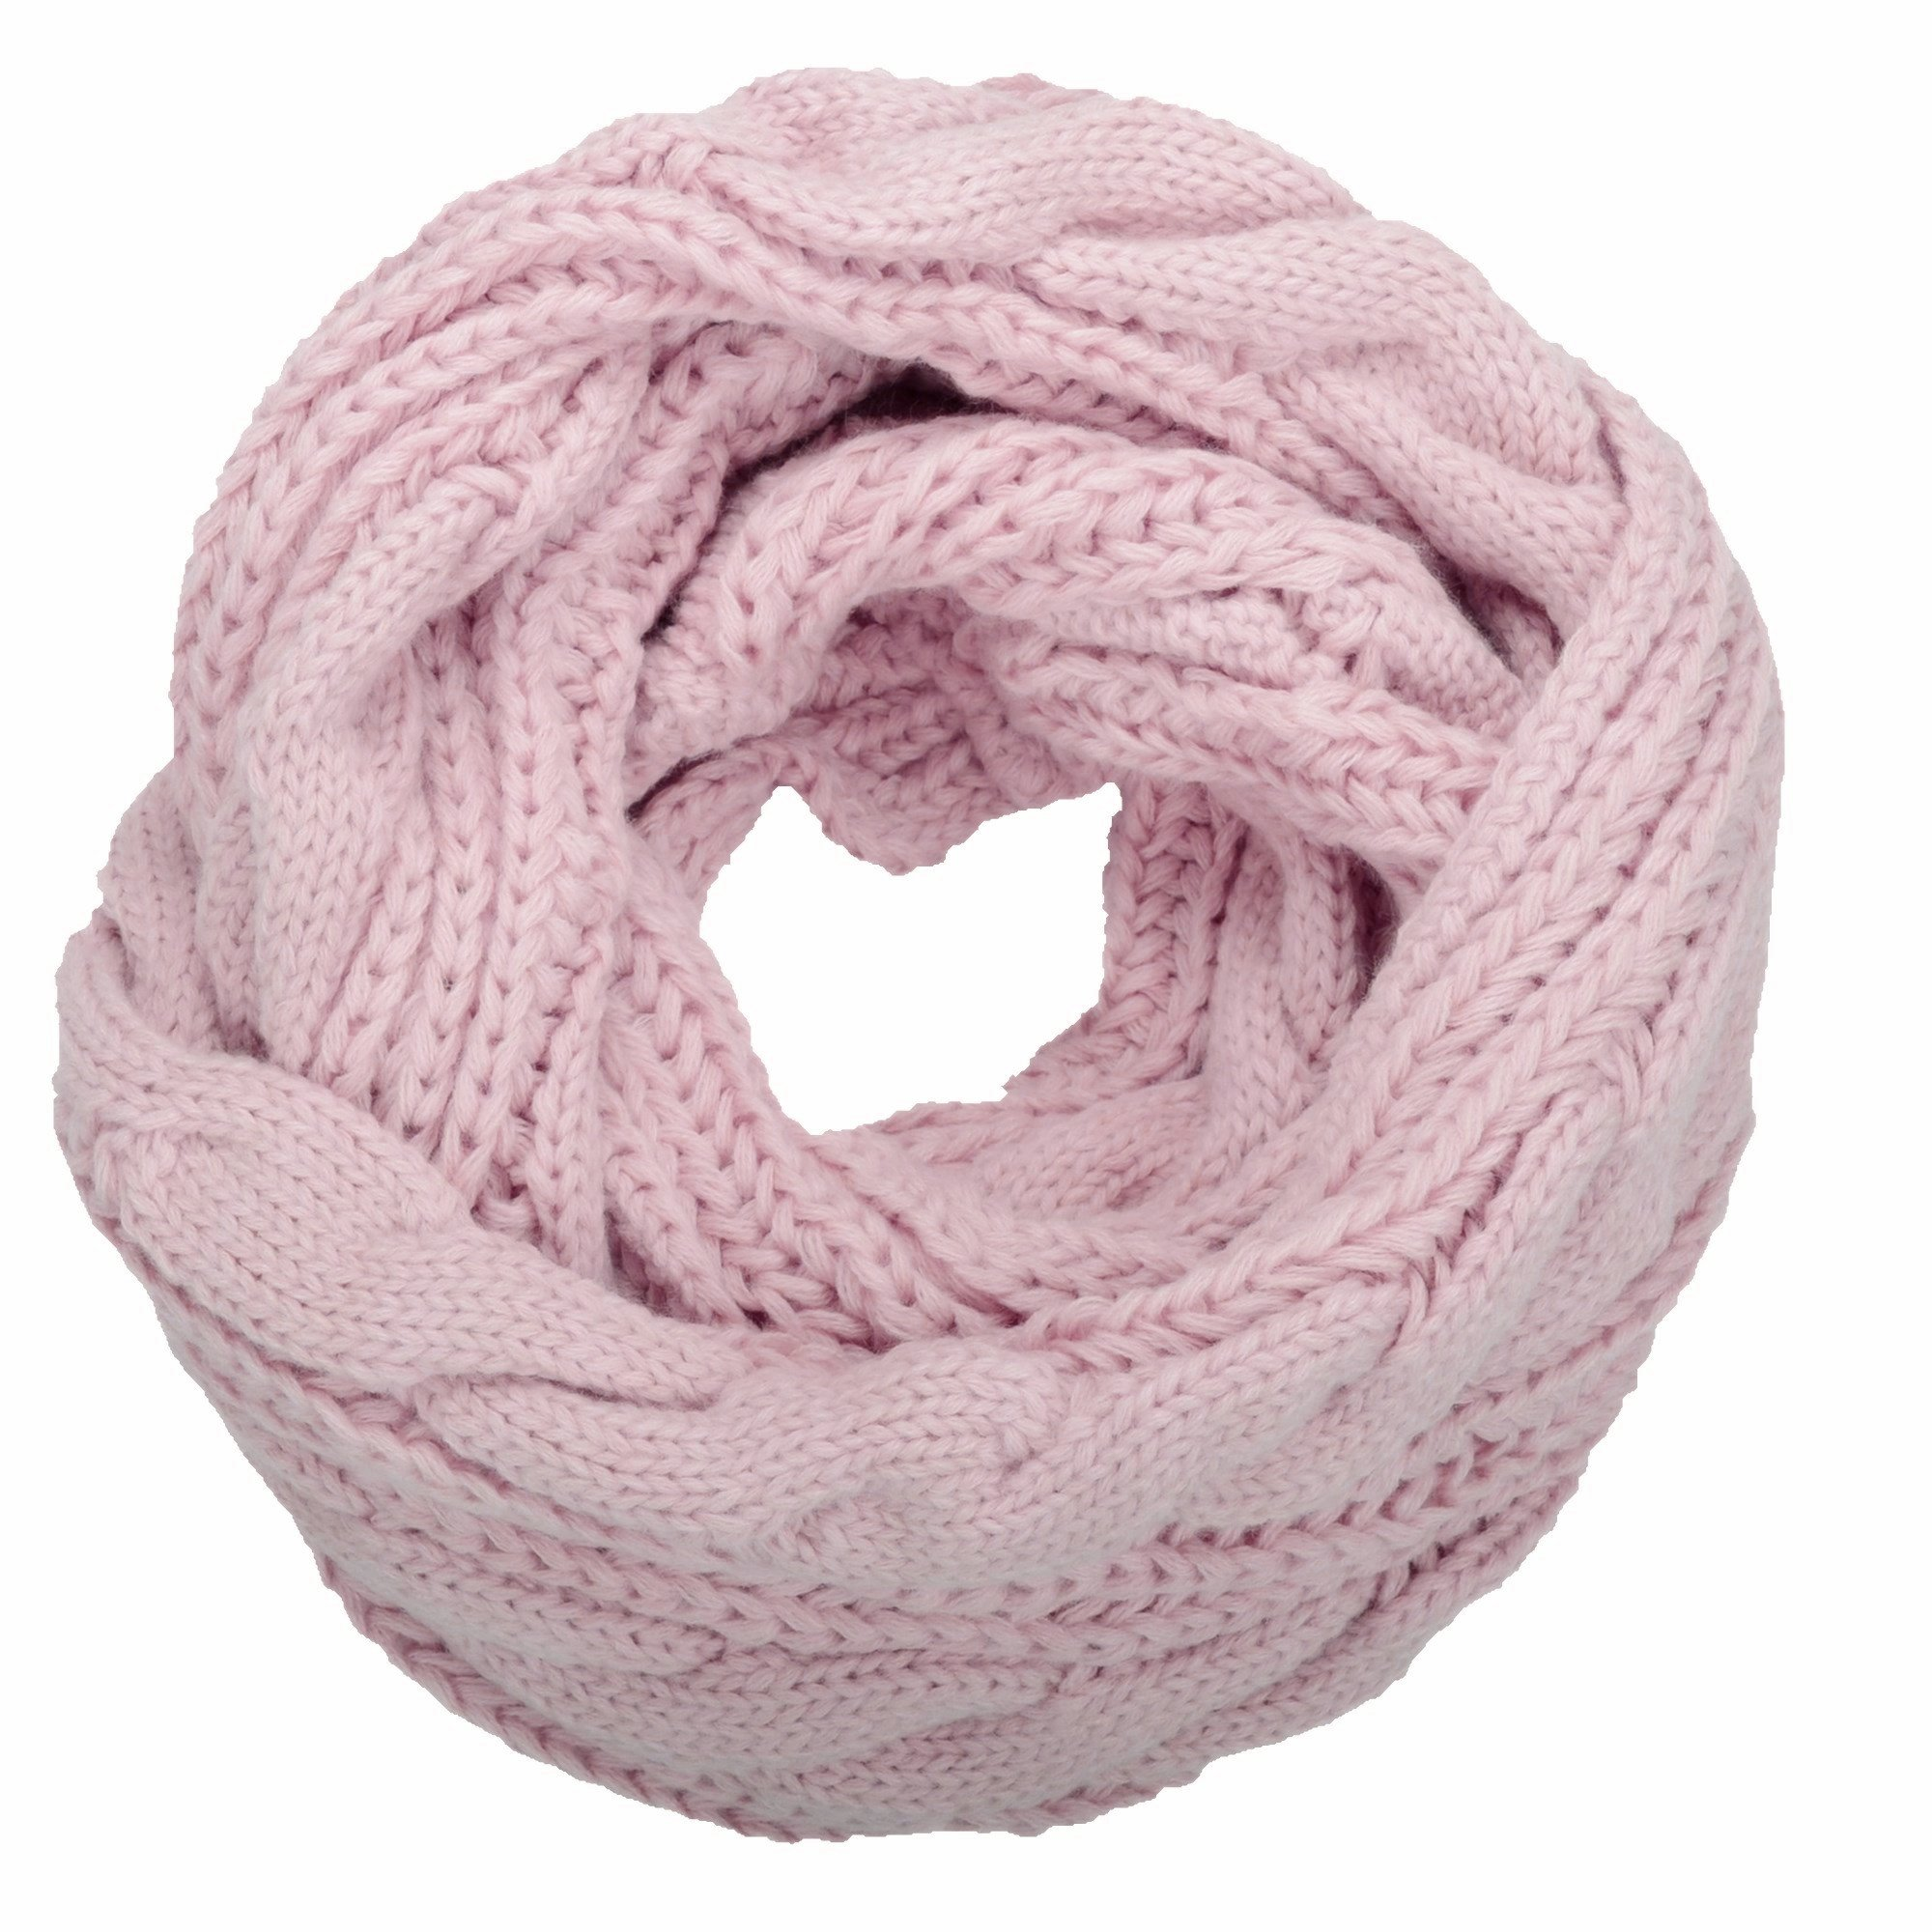 NEOSAN Womens Thick Ribbed Knit Winter Infinity Circle Loop Scarf Twist Light Pink by NEOSAN